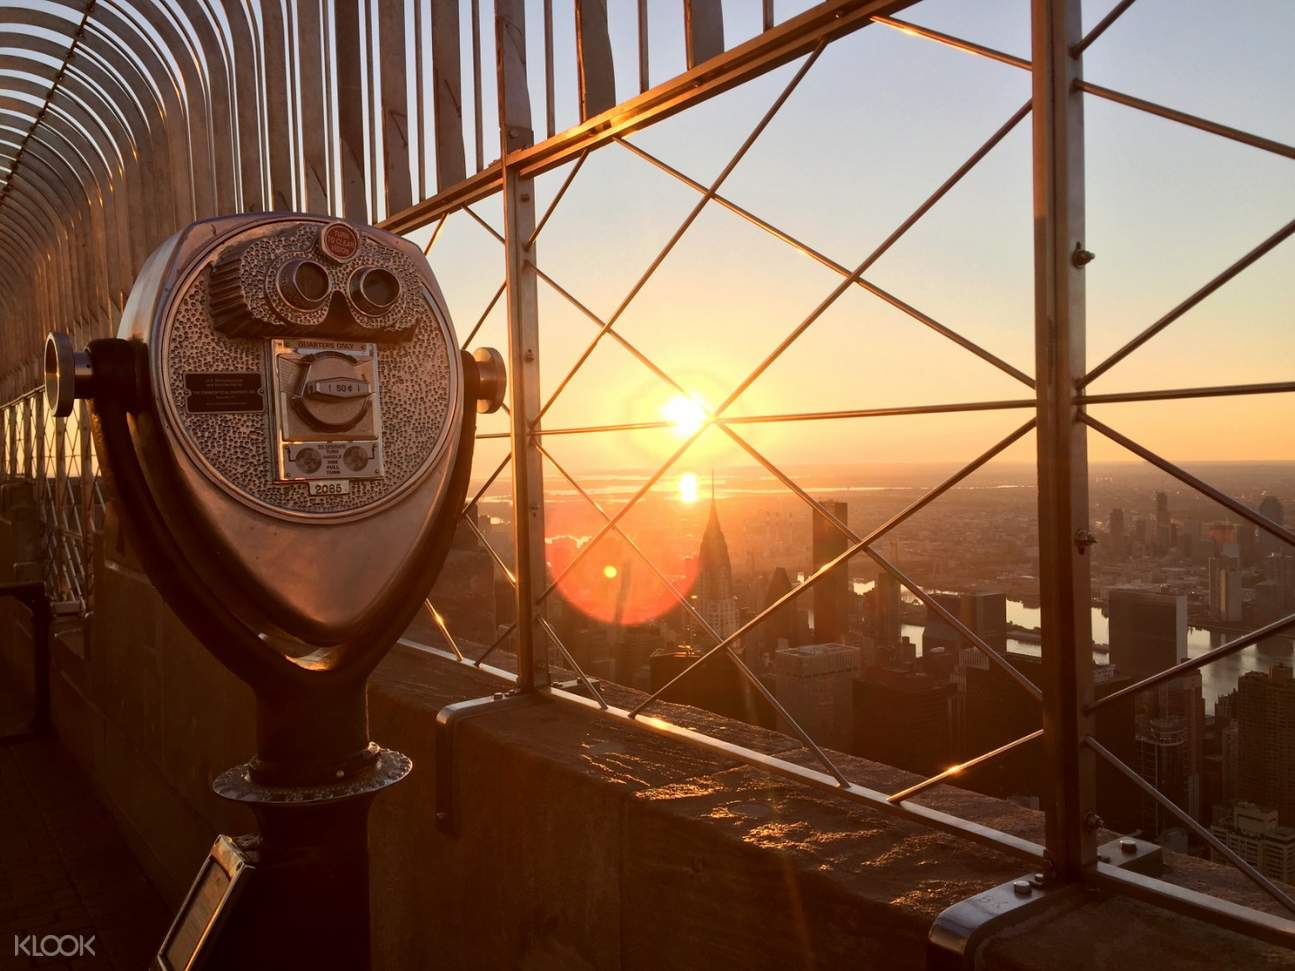 sunset view of new york on top of a building